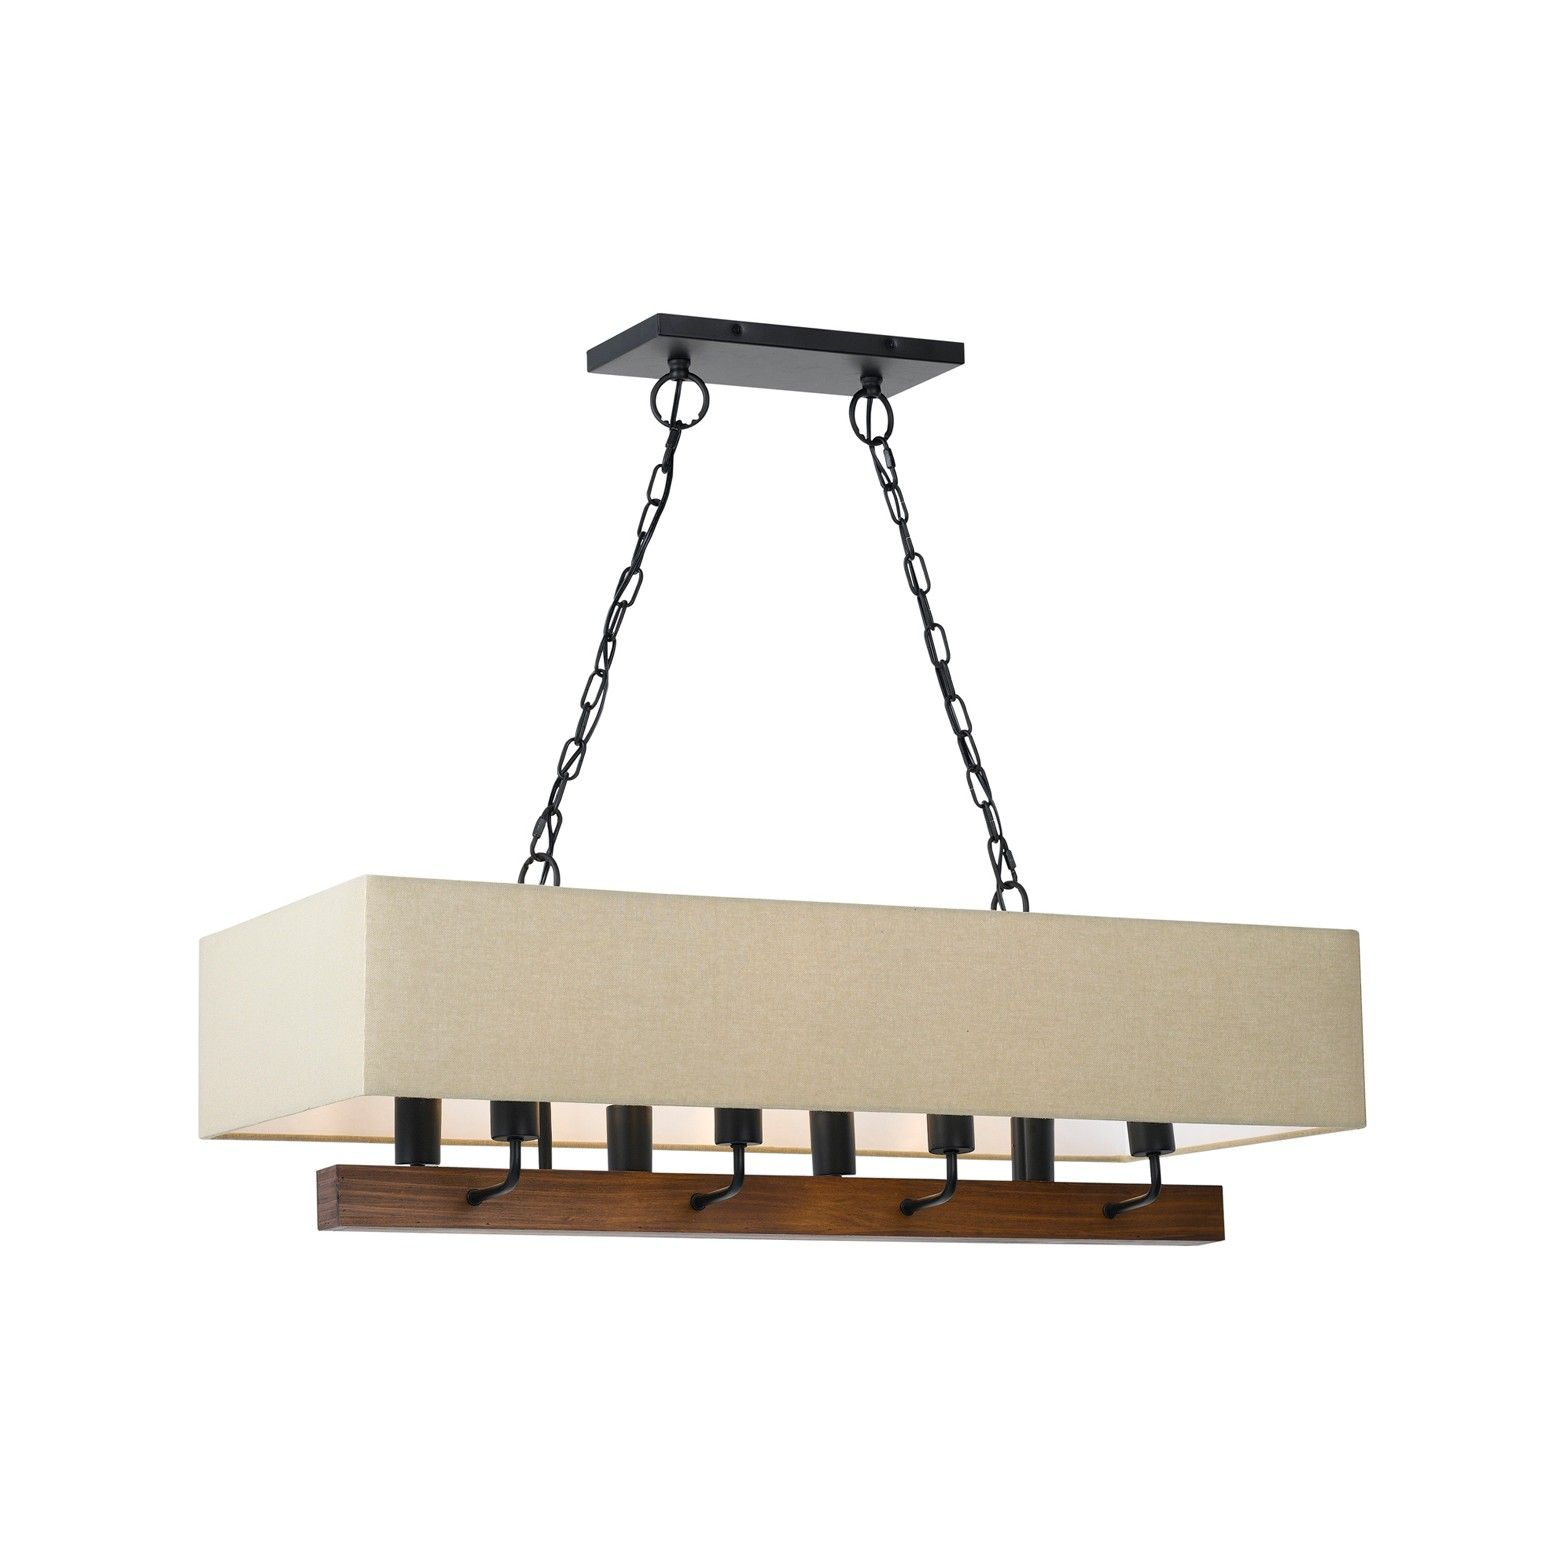 Burley Wood Metal Chandelier With Burlap Shade 60w X 8 Black